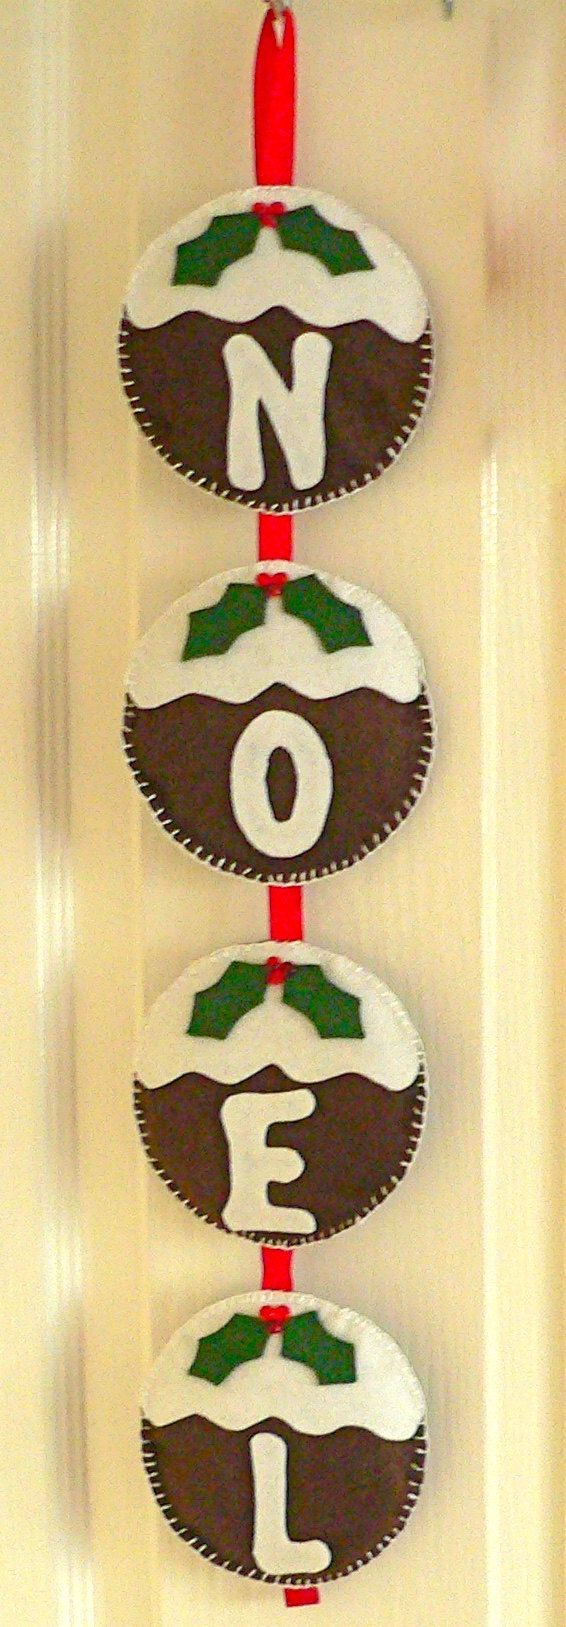 This gorgeous felt Christmas pudding NOEL decoration is hand stitched by me. It is made with acrylic felt and is handstitched with love. It is Read at : diyavdiy.blogspot.com